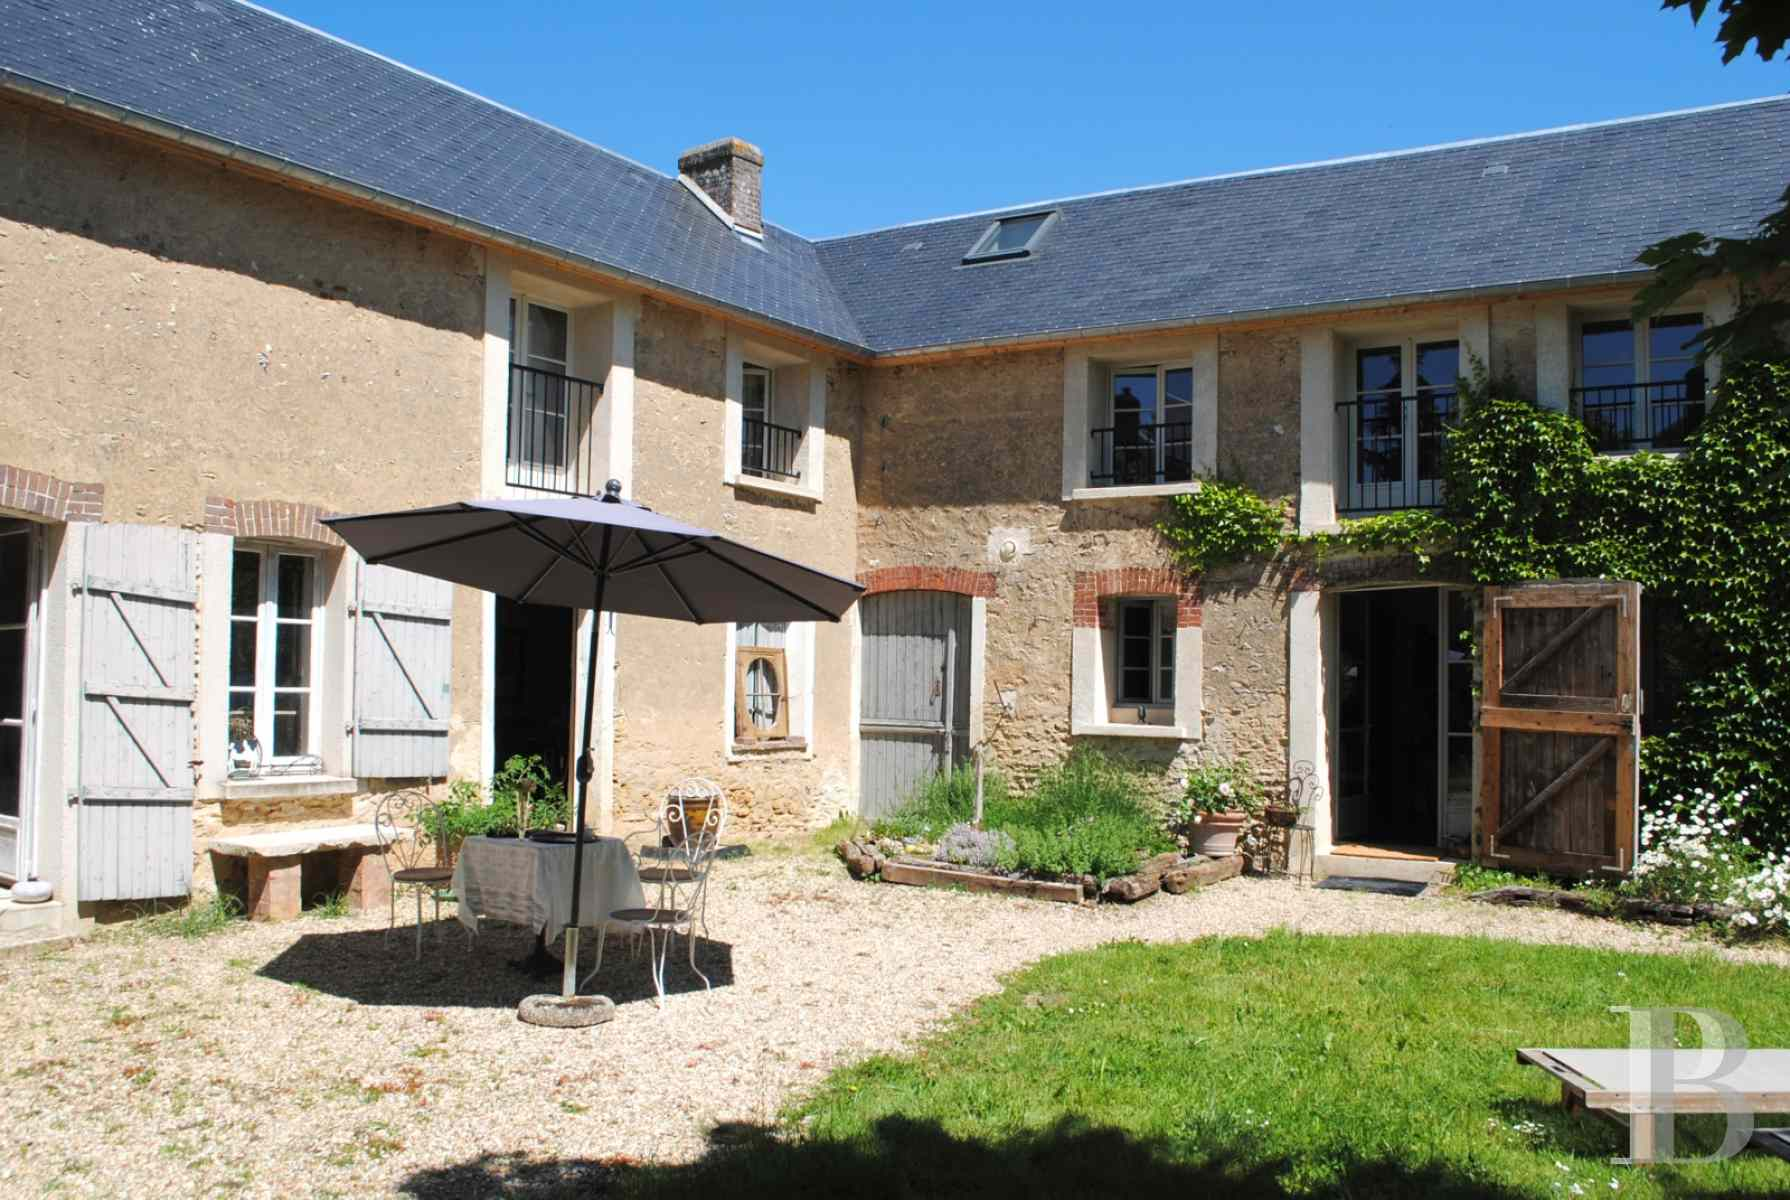 property for sale France upper normandy 18th century - 1 zoom